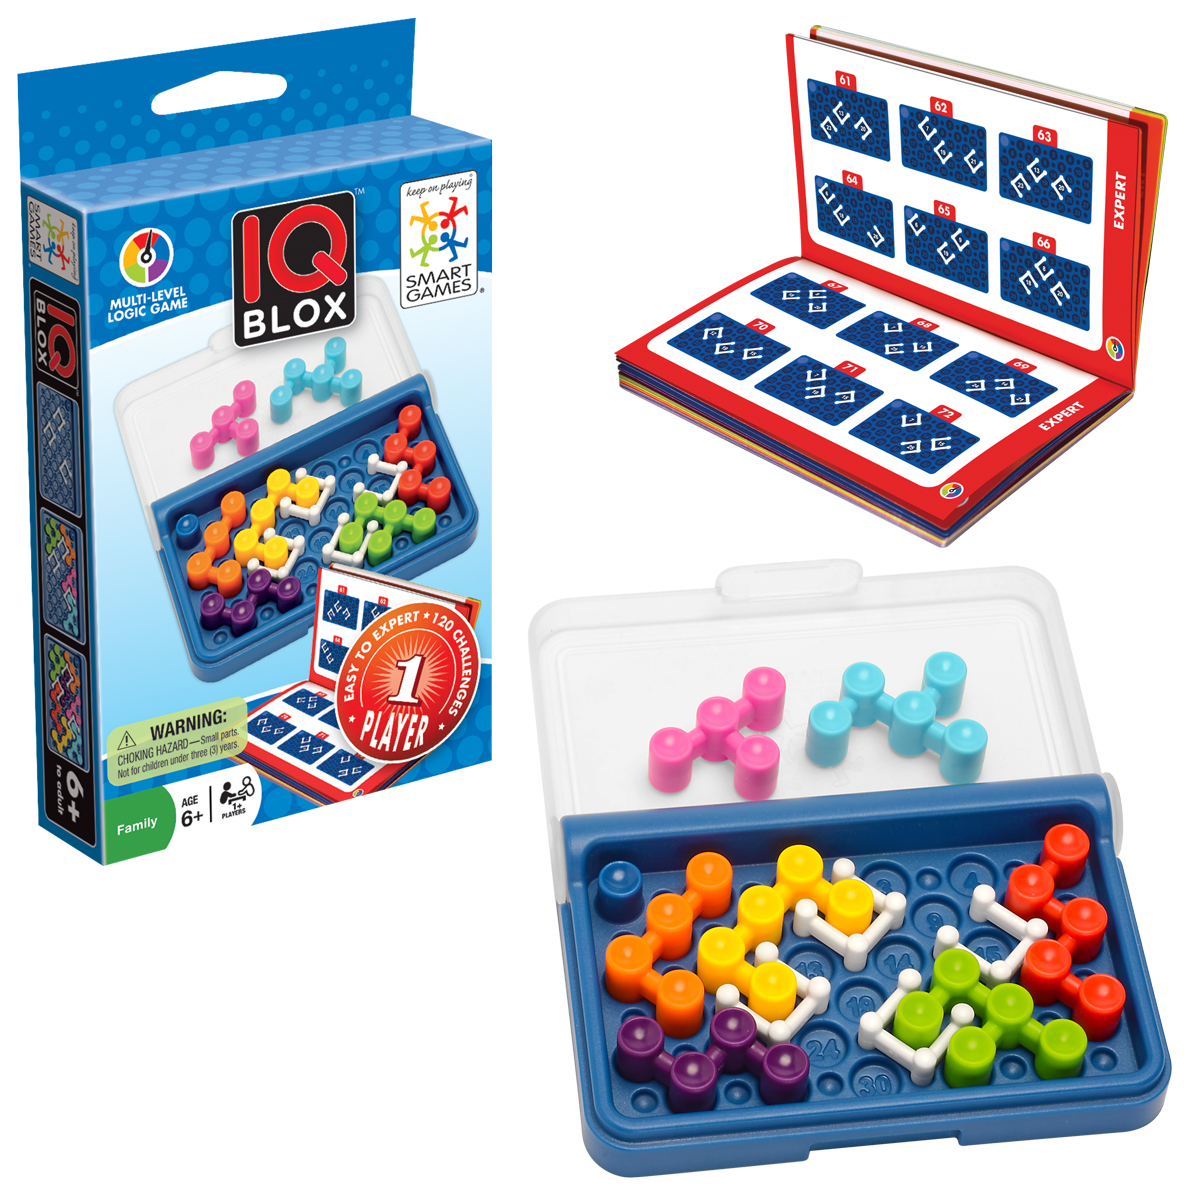 IQ-Blox-(pack+product+booklet).jpg